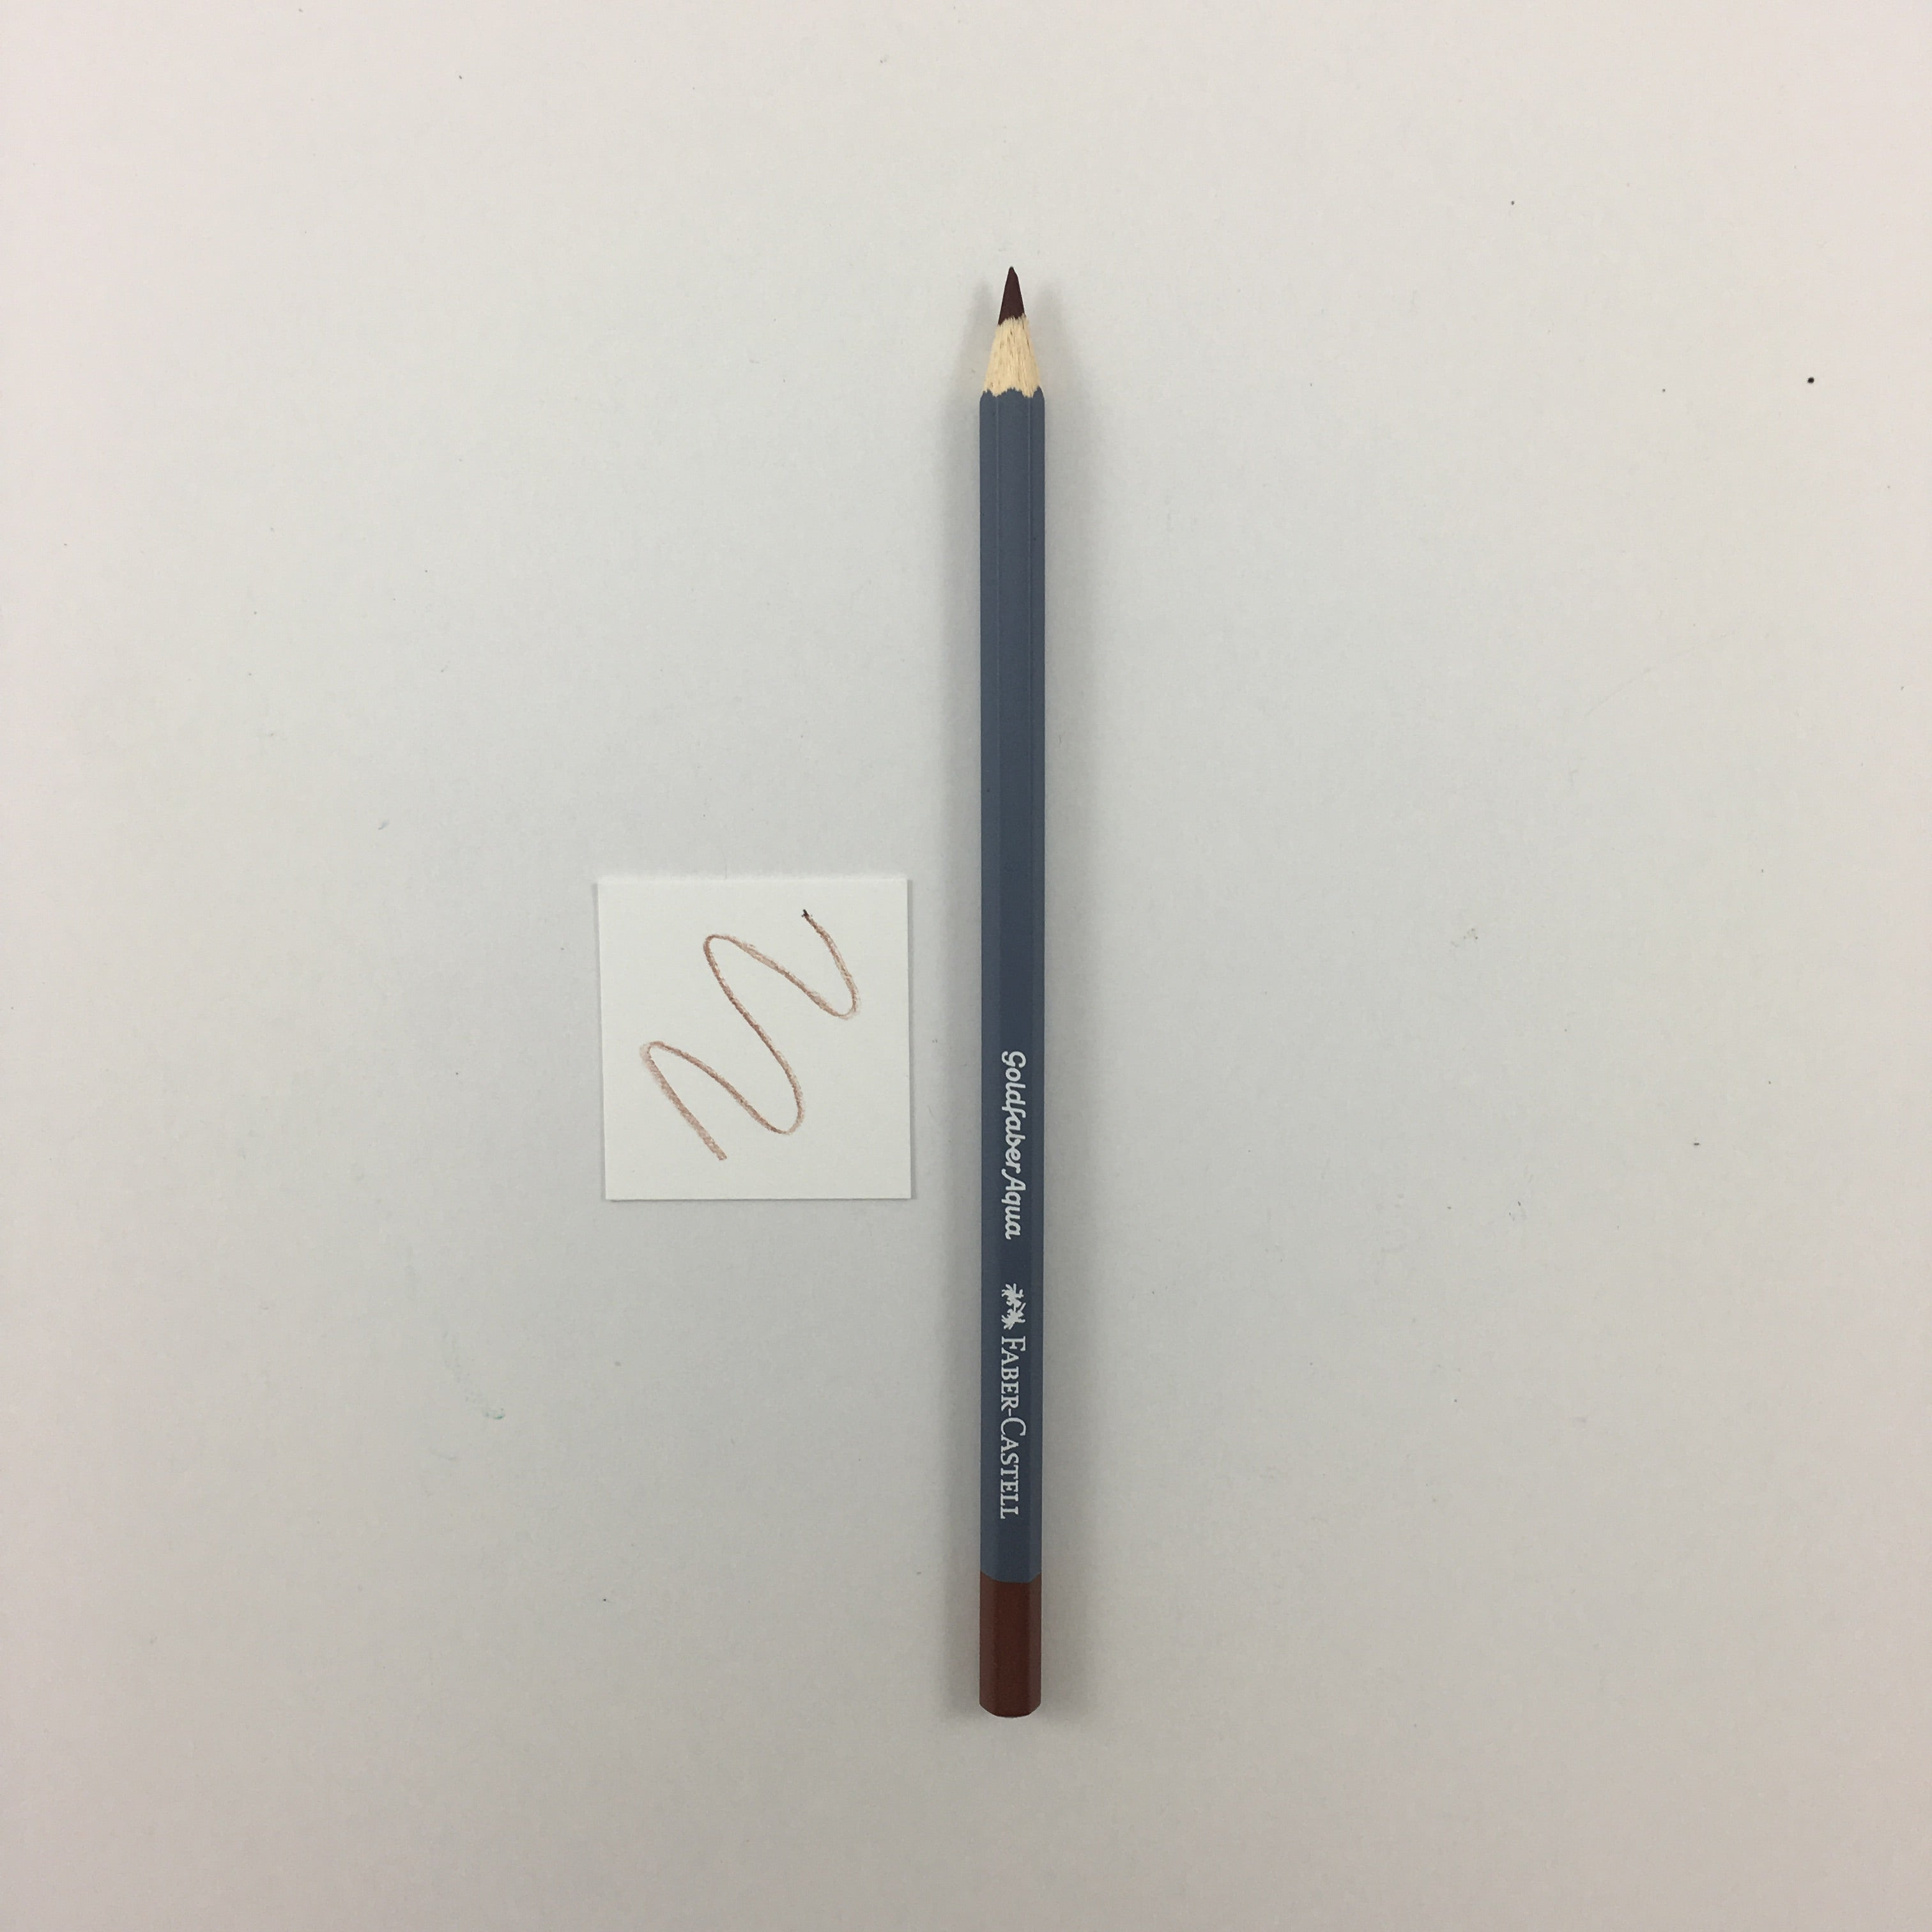 Faber-Castell Goldfaber Aqua Watercolor Pencils - Individuals - 283 - Burnt Sienna by Faber-Castell - K. A. Artist Shop